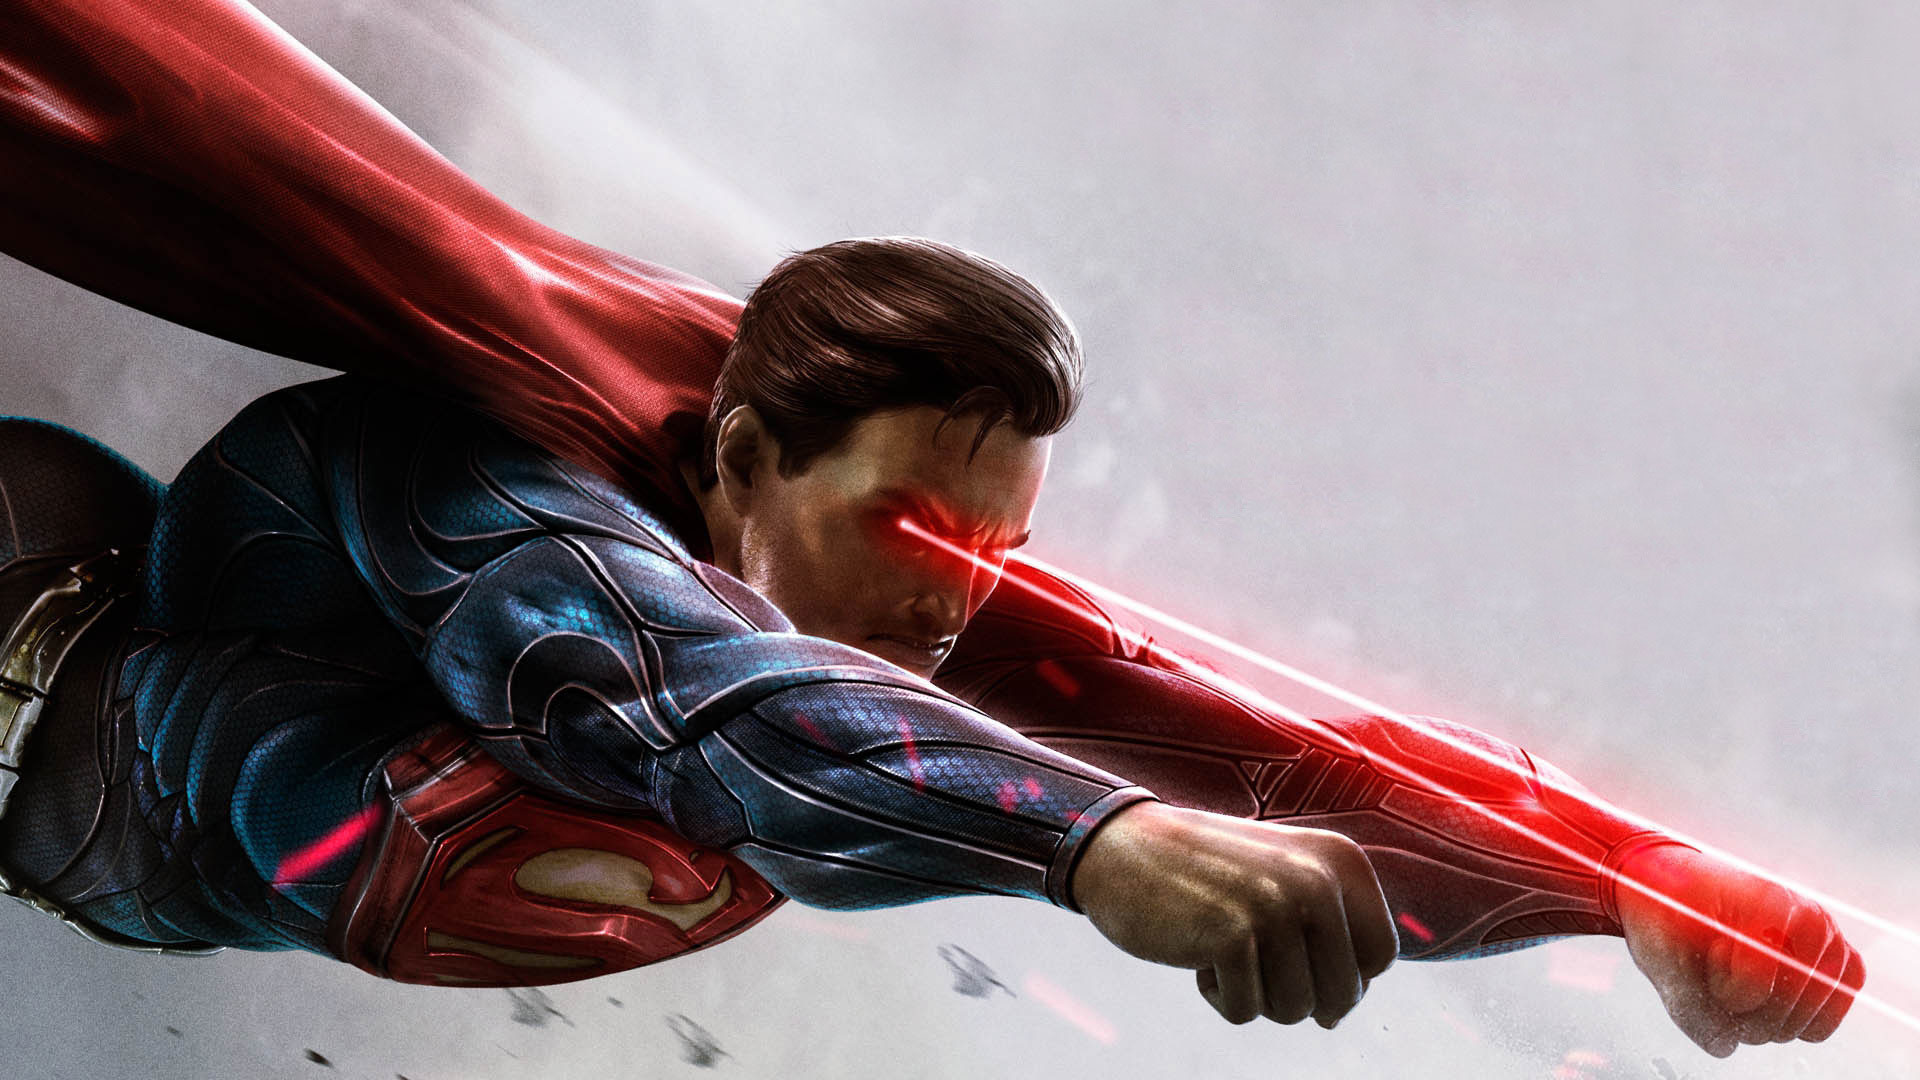 hd pics photos attractive stunning superman red eye flying hollywood hd  quality desktop background wallpaper